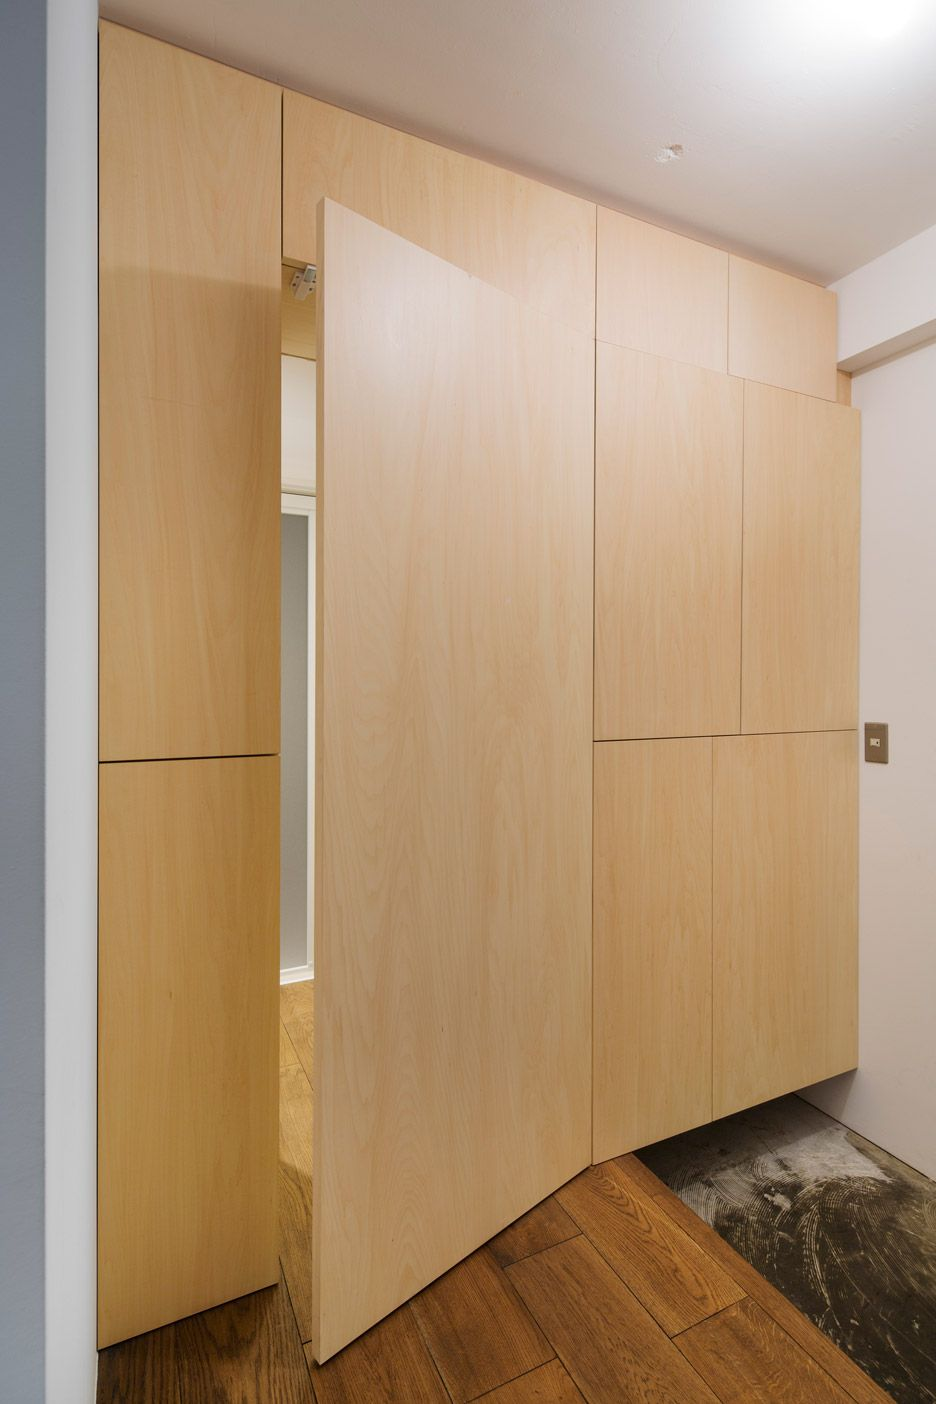 A Second Wall Of Sliding Door Panels Are Used To Cover Both Kitchen And Living Room Storage Sliding Door Panels Hidden Doors In Walls Hidden Door